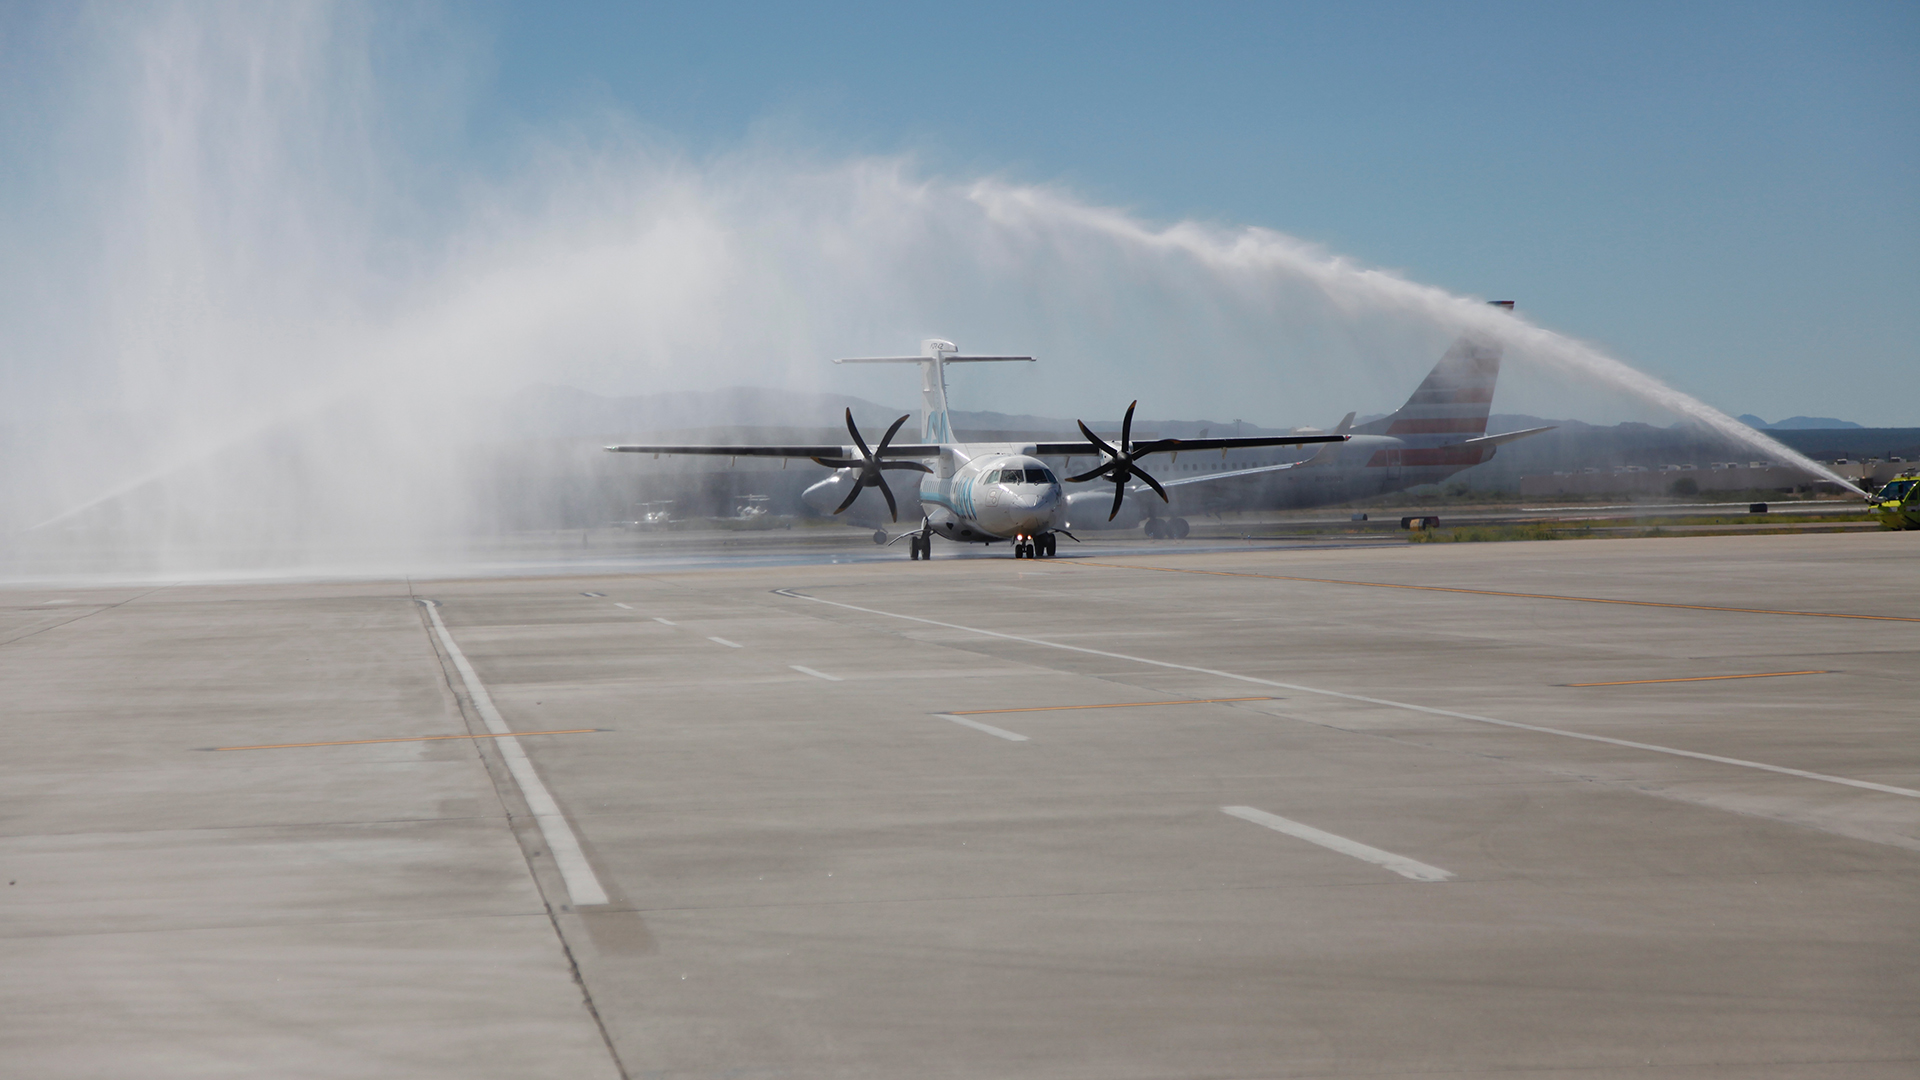 Fire crews at Tucson International Airport welcome the first arrival of a maiden flight at the airport.